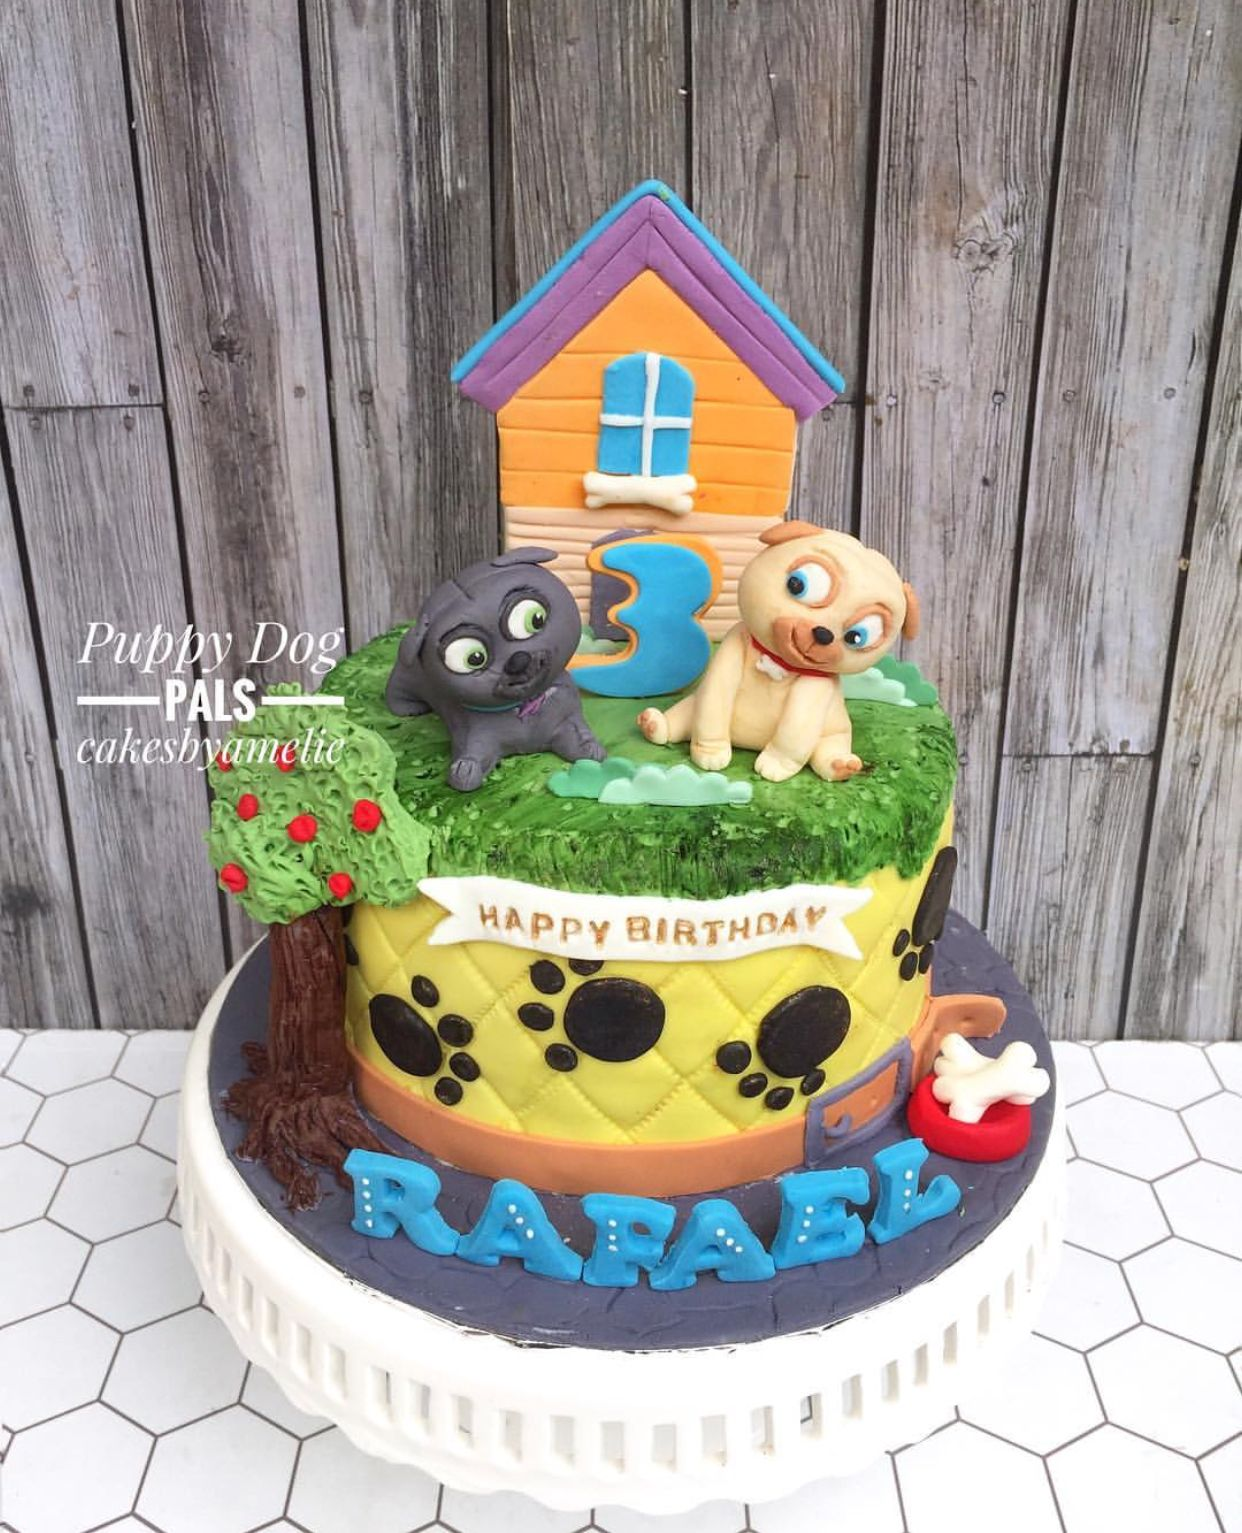 Pin by La Jessy on Adonis's 2nd Birthday ideas Puppy